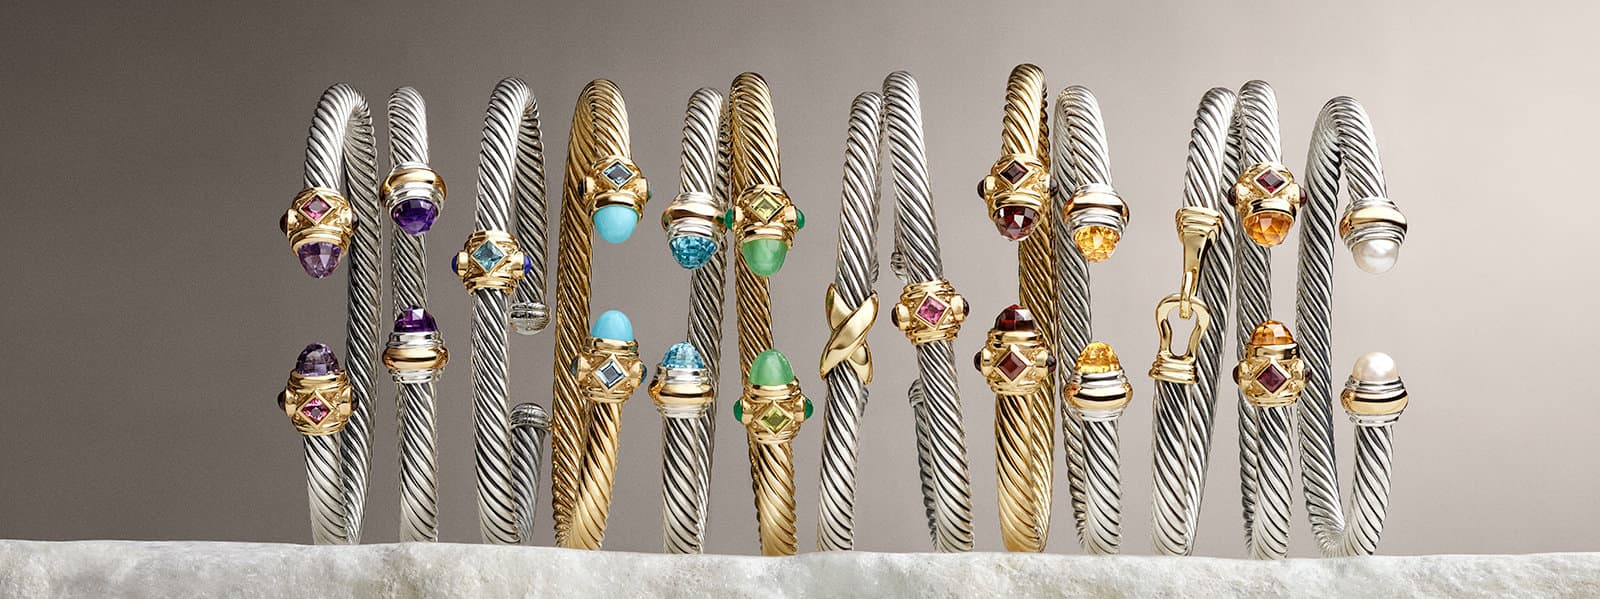 Cable Buckle Collection® and Cable Classics Collection® bracelets in sterling silver with 18K yellow gold, blue topaz and turquoise on a white stone.